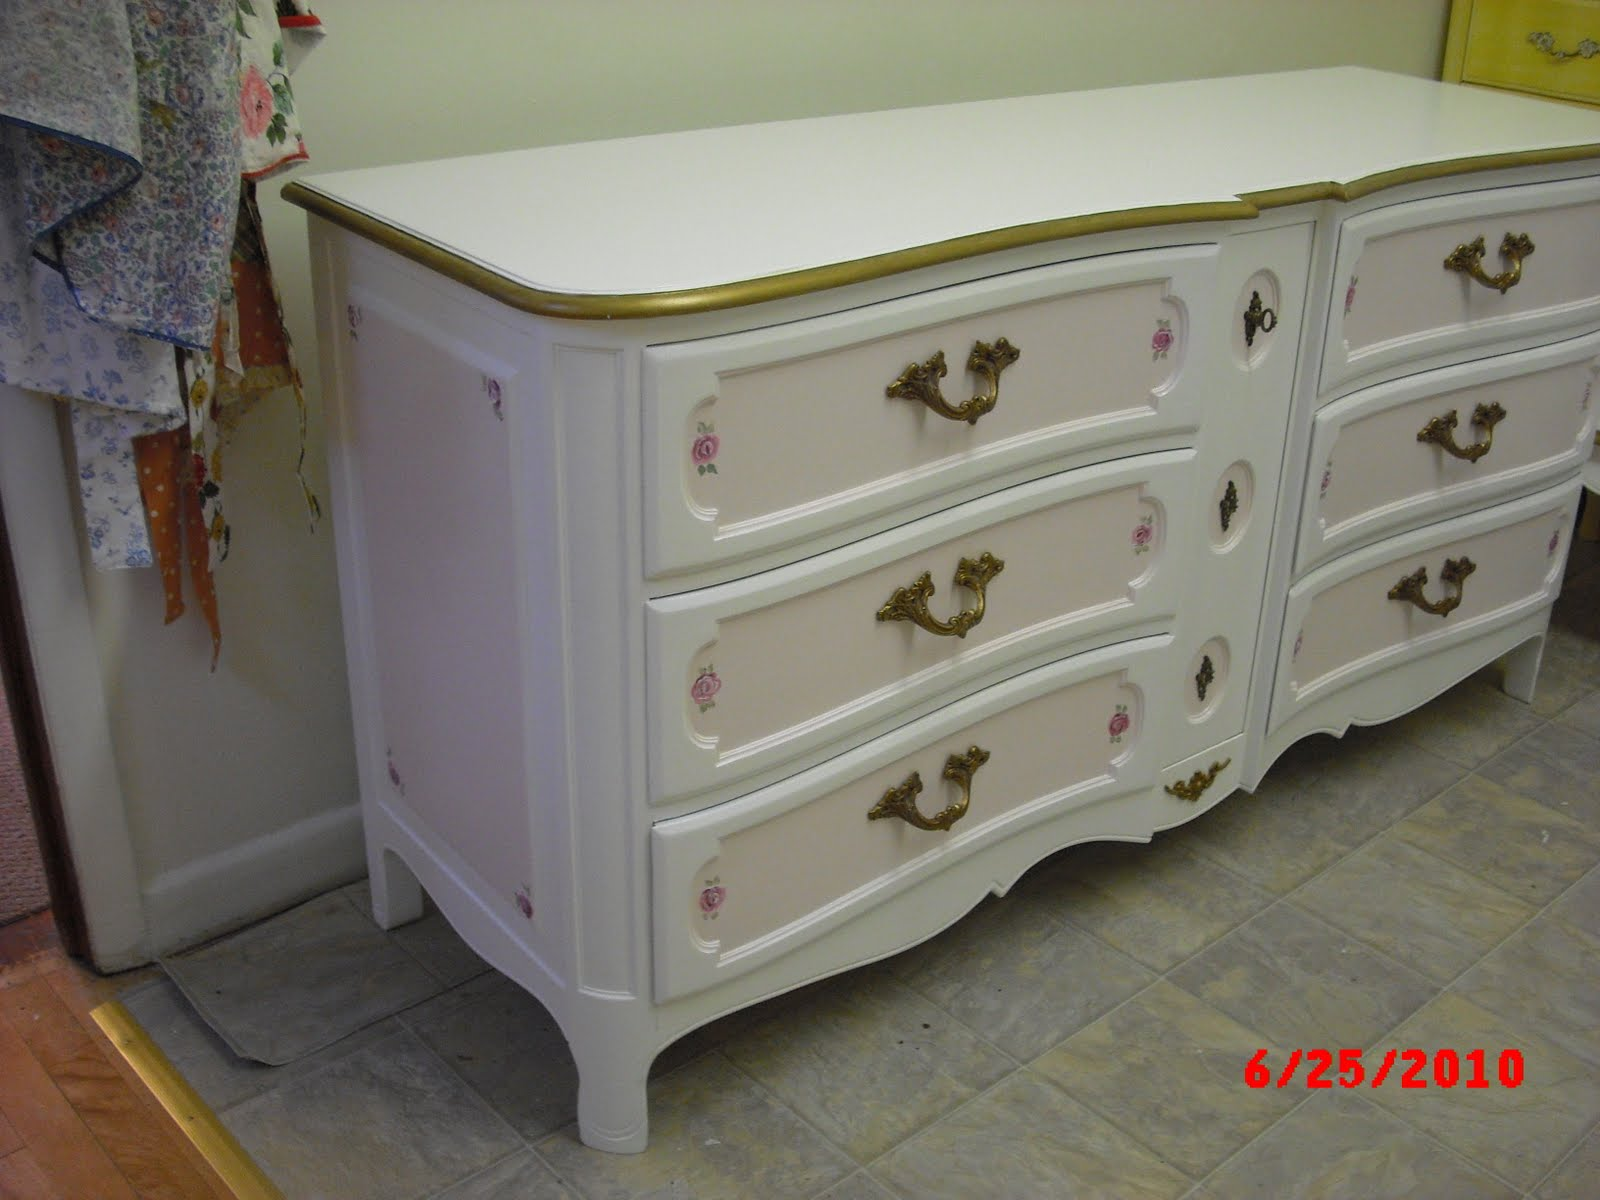 Handpainted Furniture Blog Shabby Chic Vintage Painted: images of painted furniture